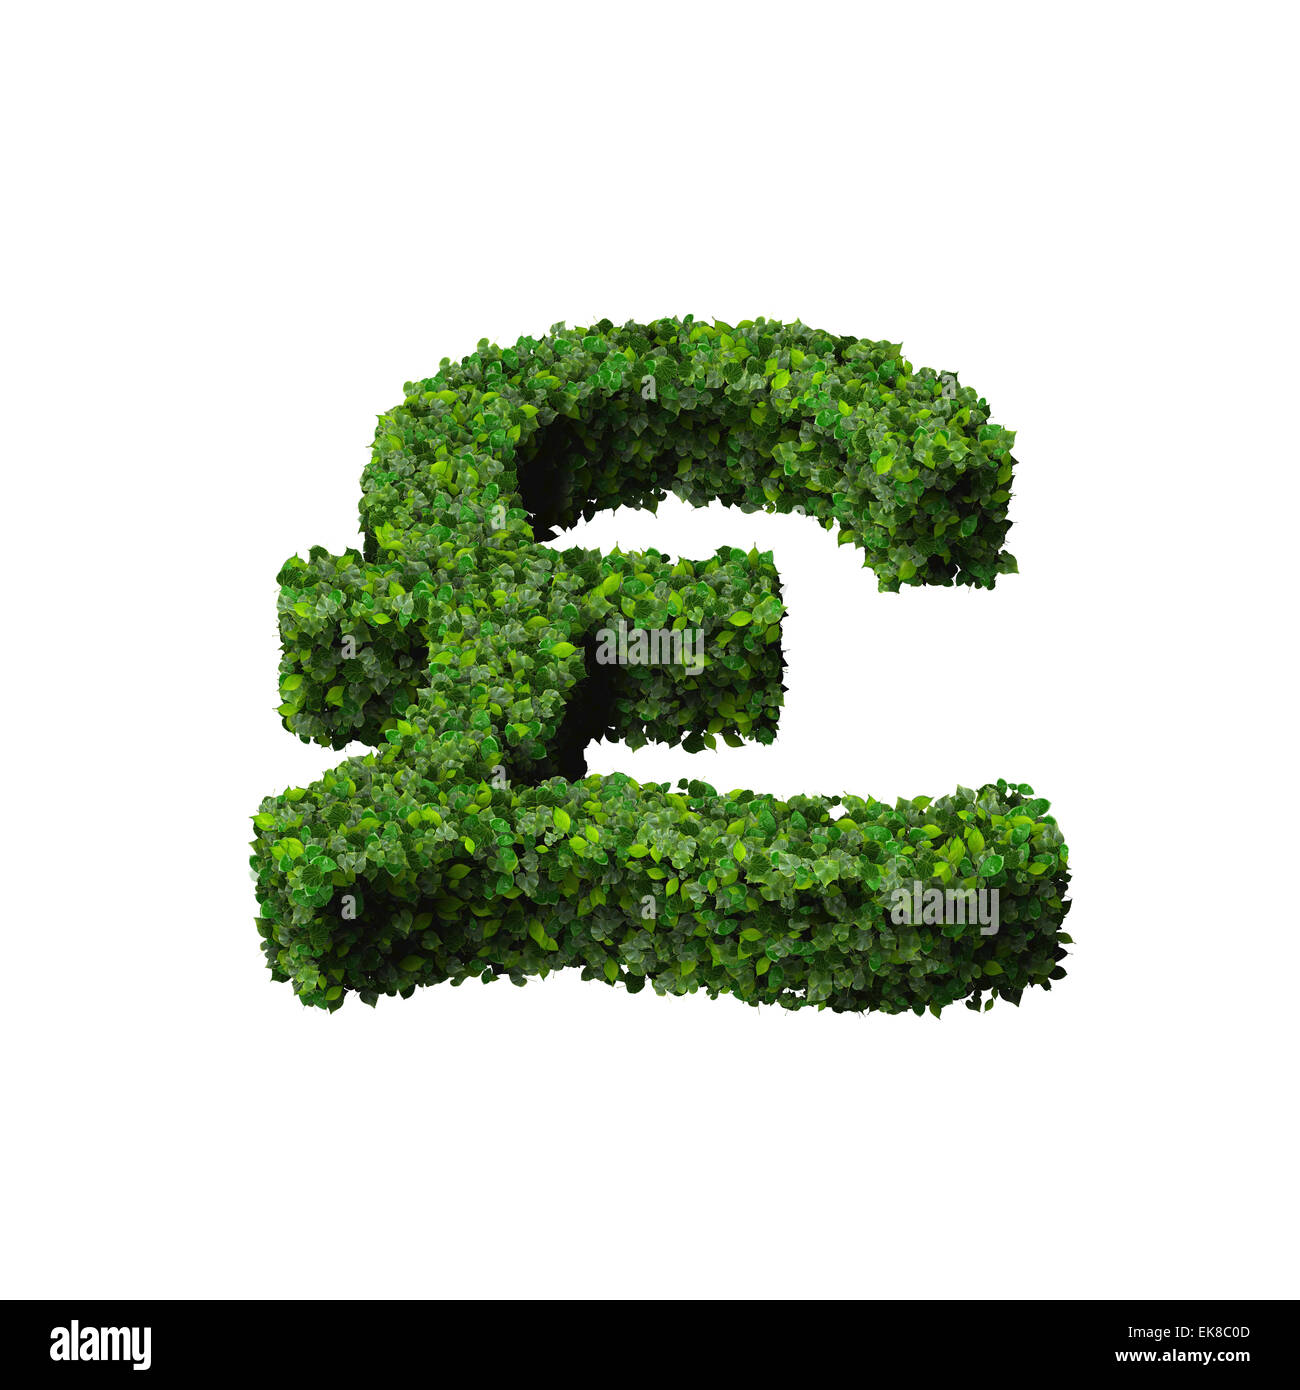 British Pound Currency Symbol Or Sign Made From Green Leaves Stock